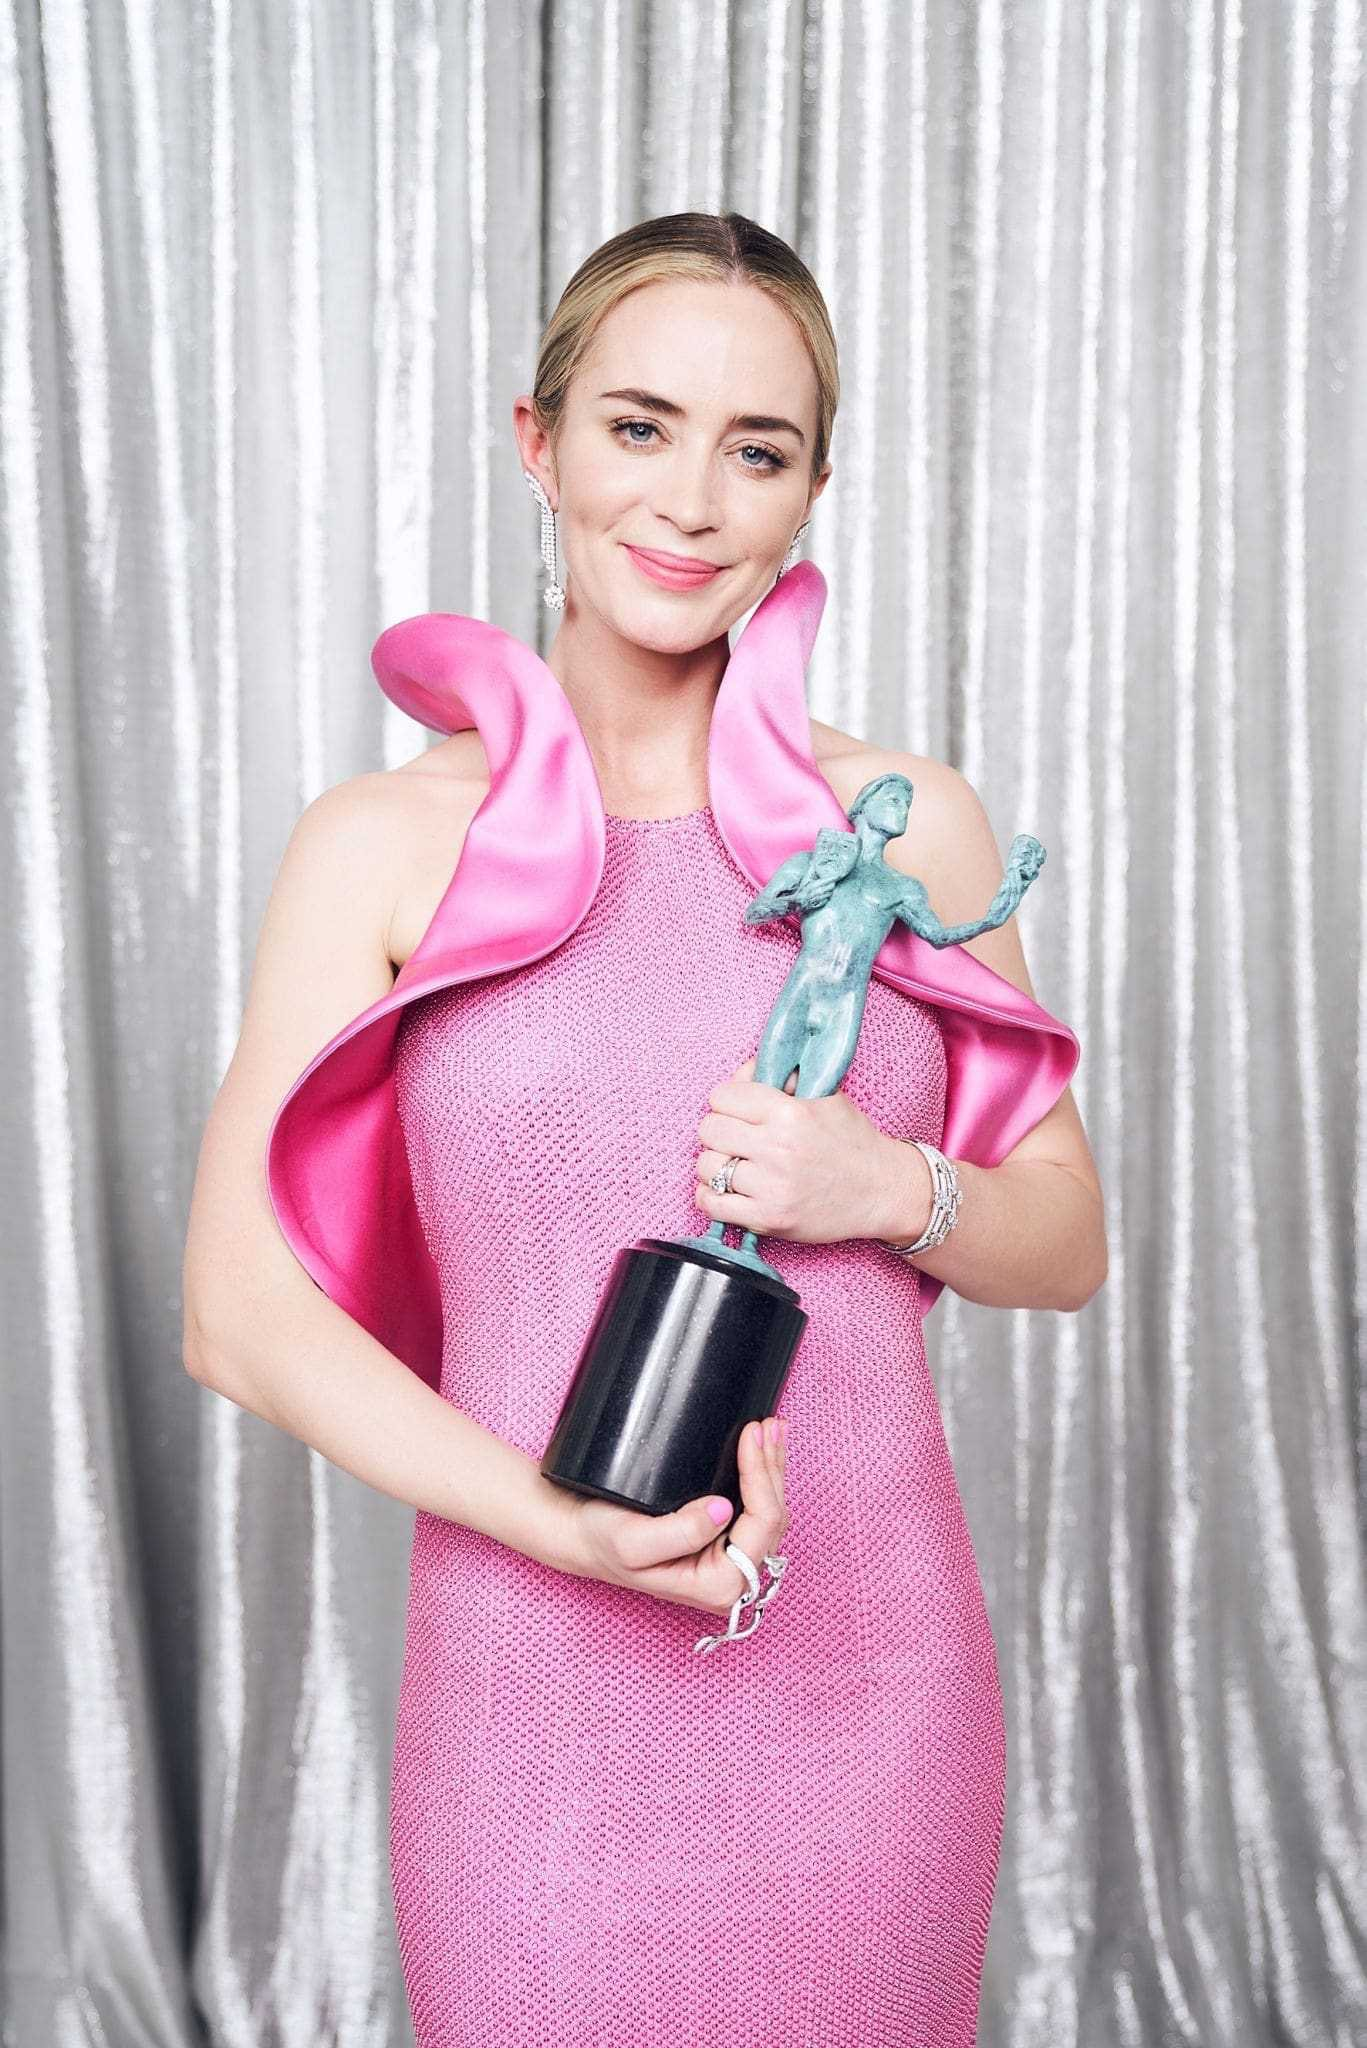 Happy birthday to the one and only emily blunt